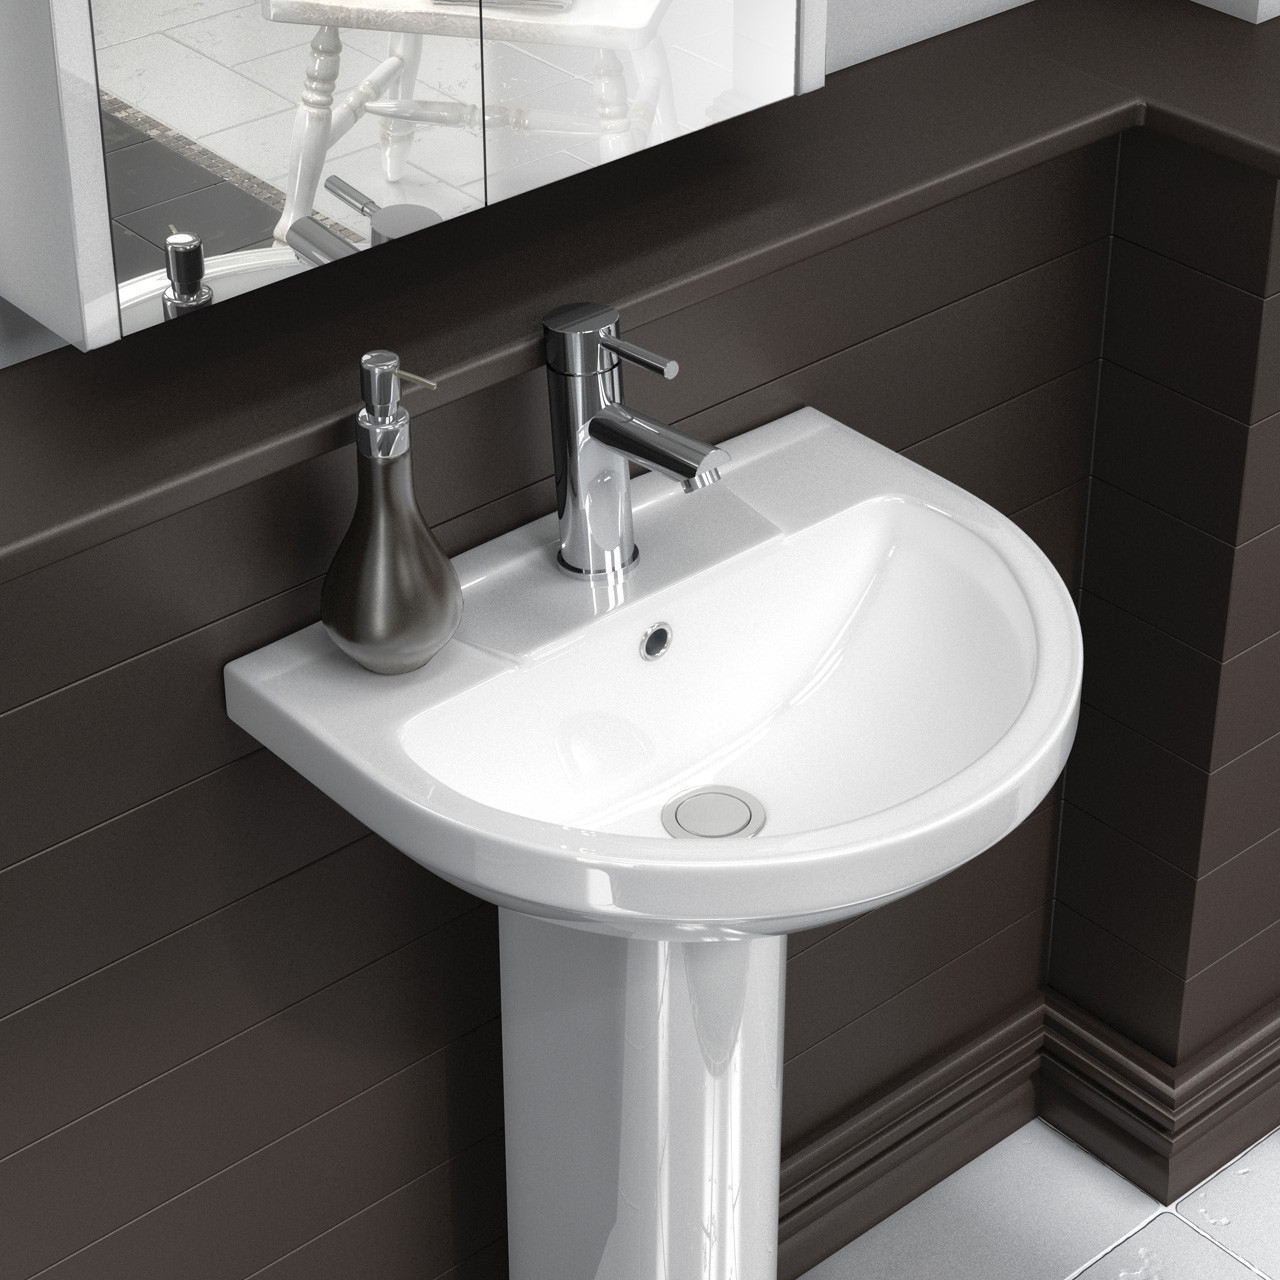 Premier Harmony Semi Recessed Basin with 1 Tap Hole - NCH305A